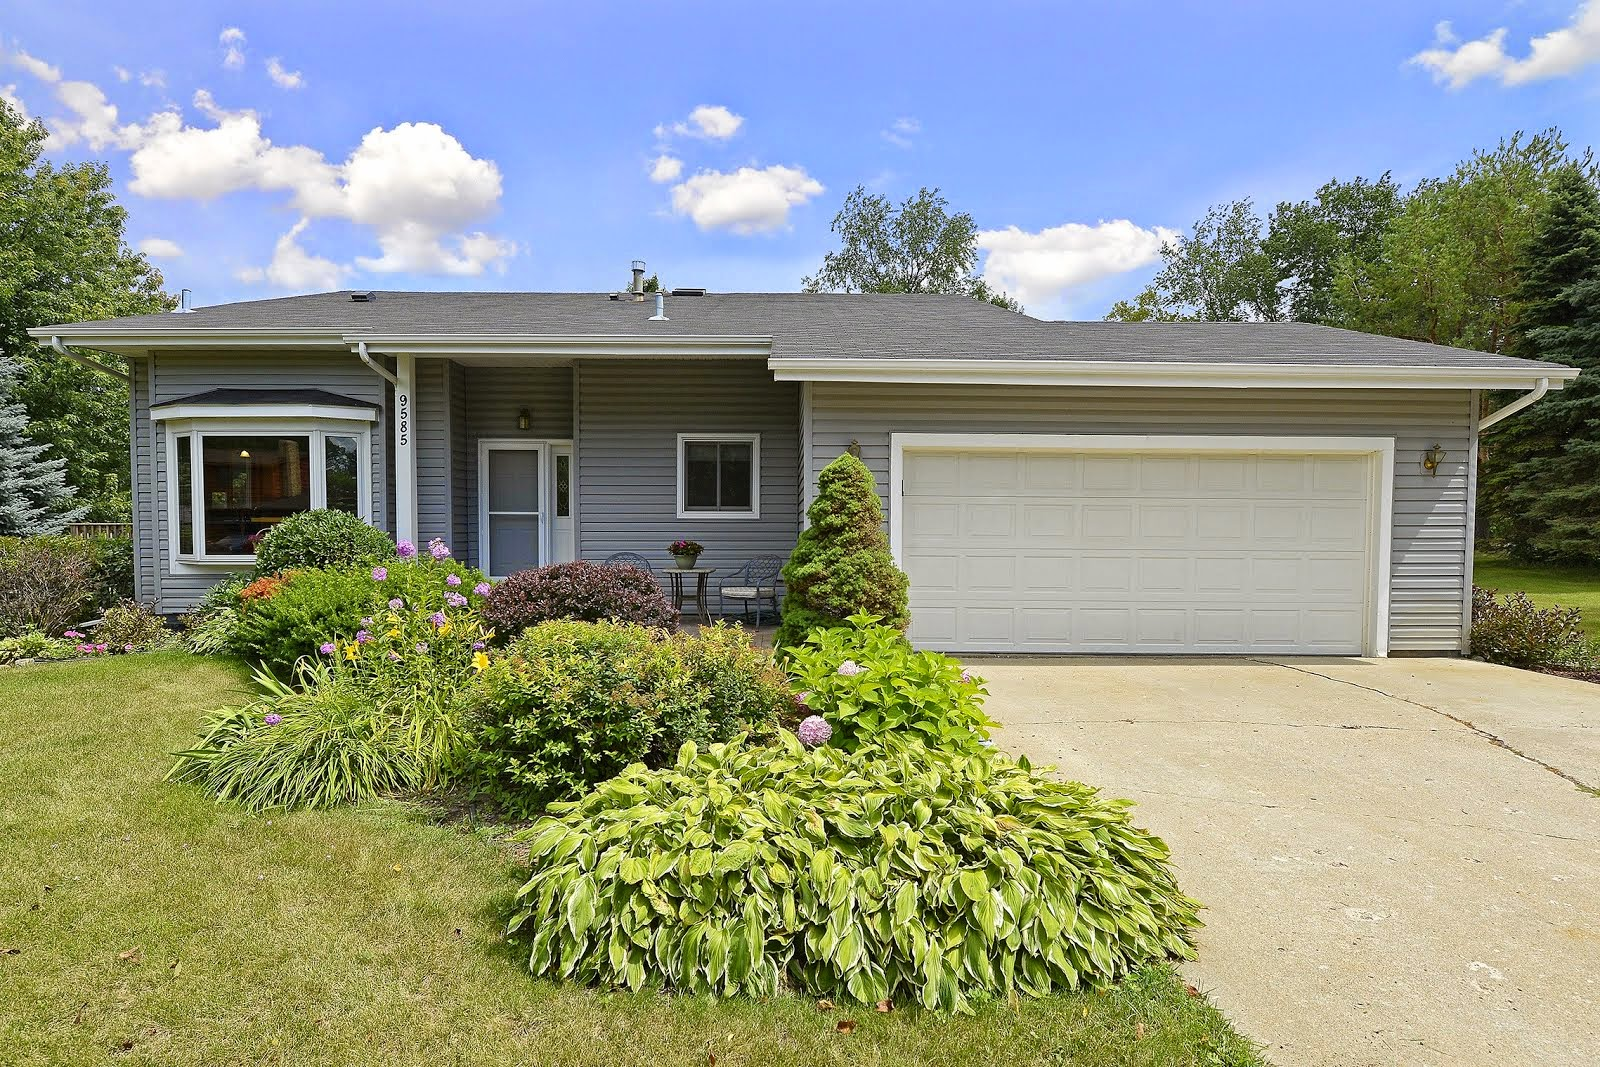 SOLD 9585 Lakeview Lane, Chaska MN 55318